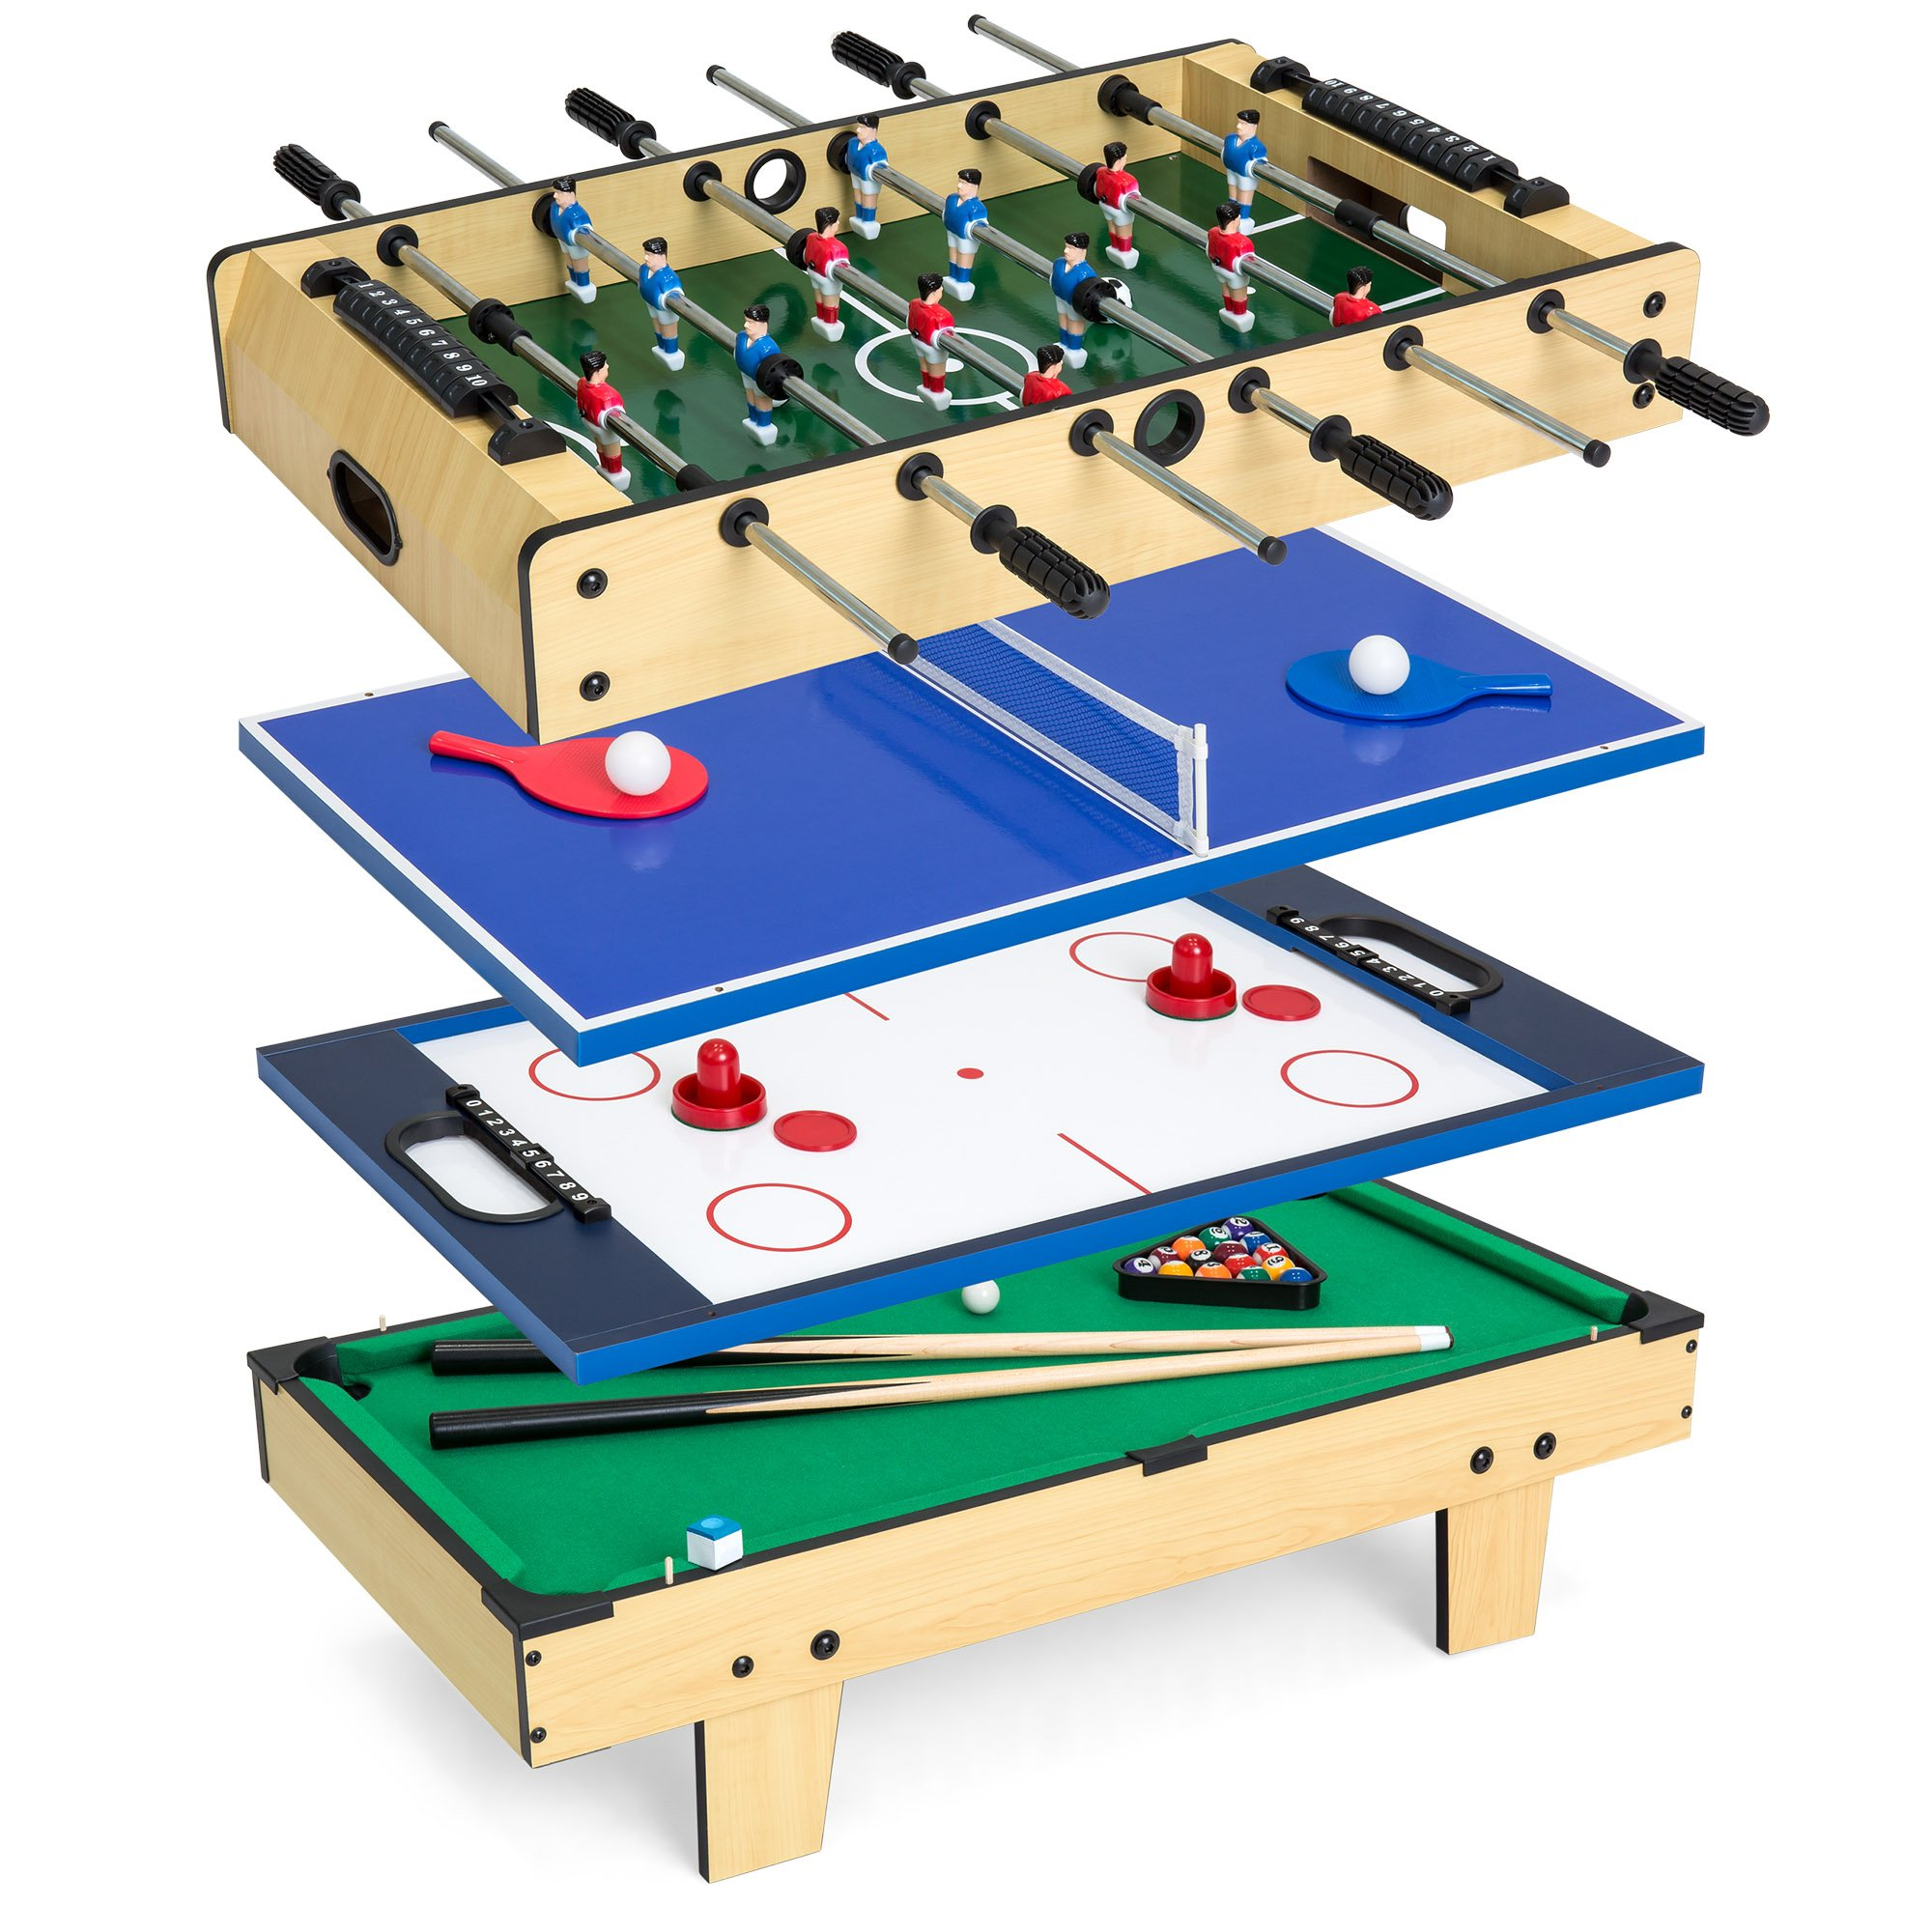 Best Choice Products 4-in-1 Game Table w/Pool Billiards, Air Hockey, Foosball and Table Tennis by Best Choice Products